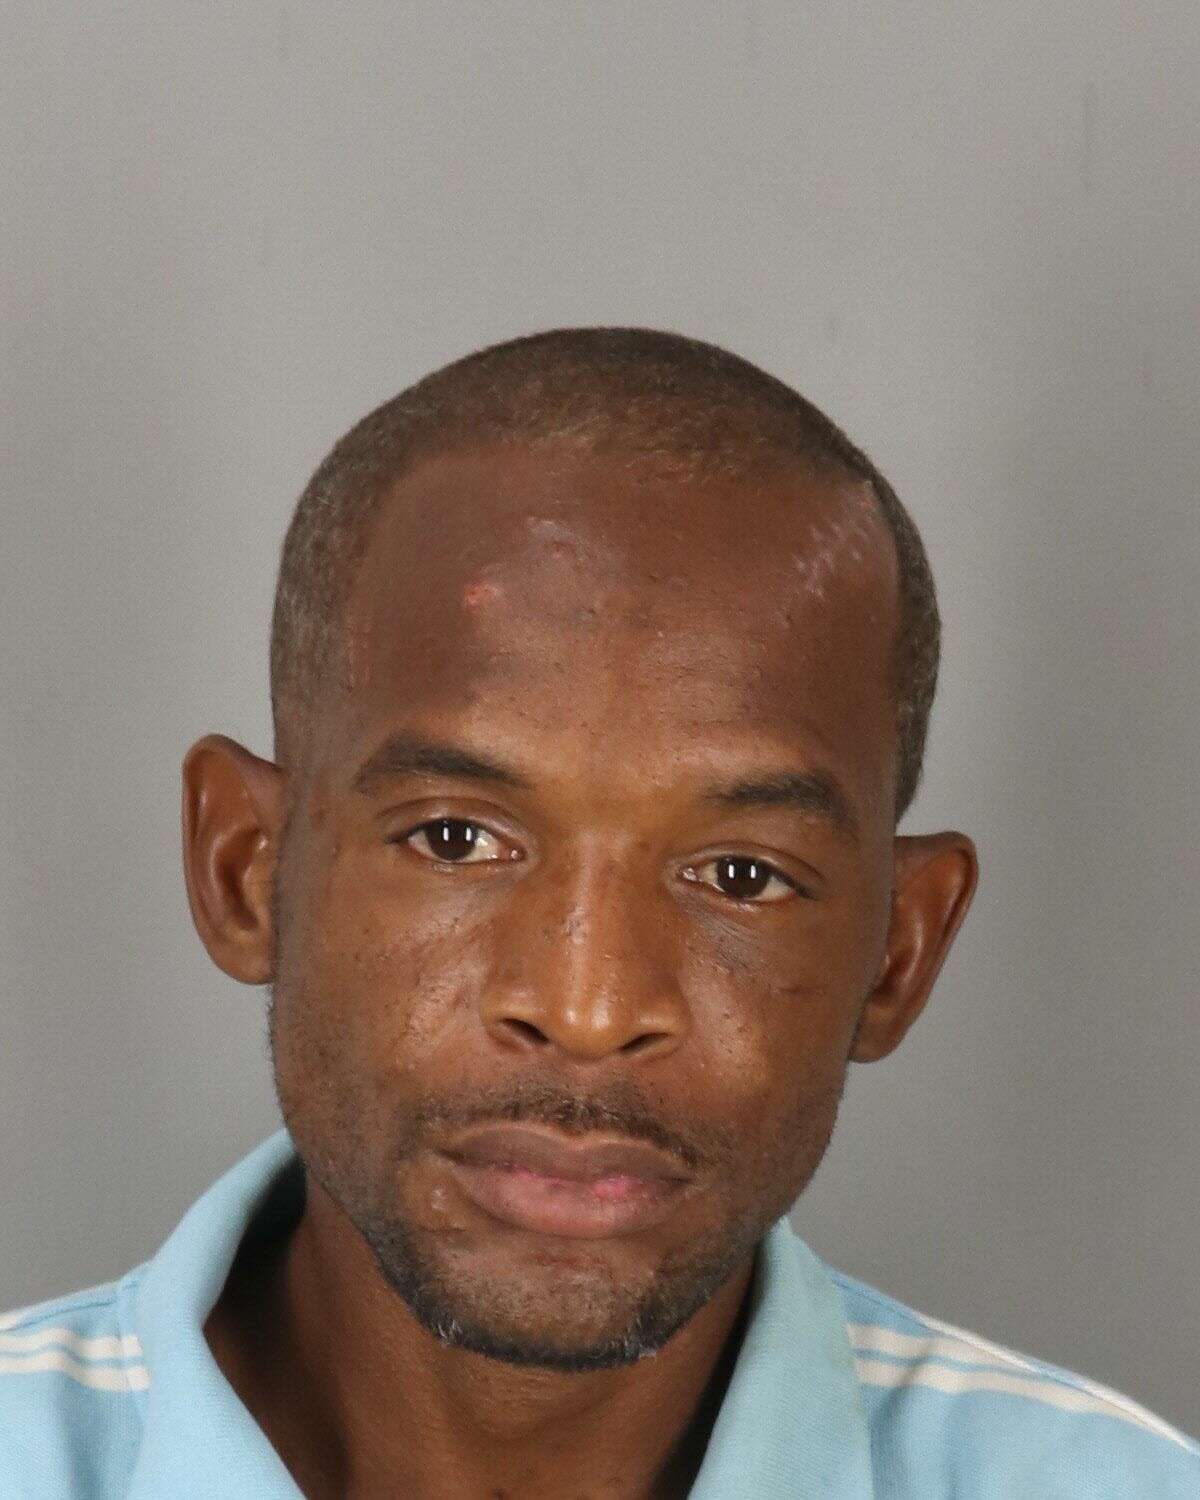 Deverne Sentel RobertsonBeaumont Charge: Possession of a controlled substance State jail felony